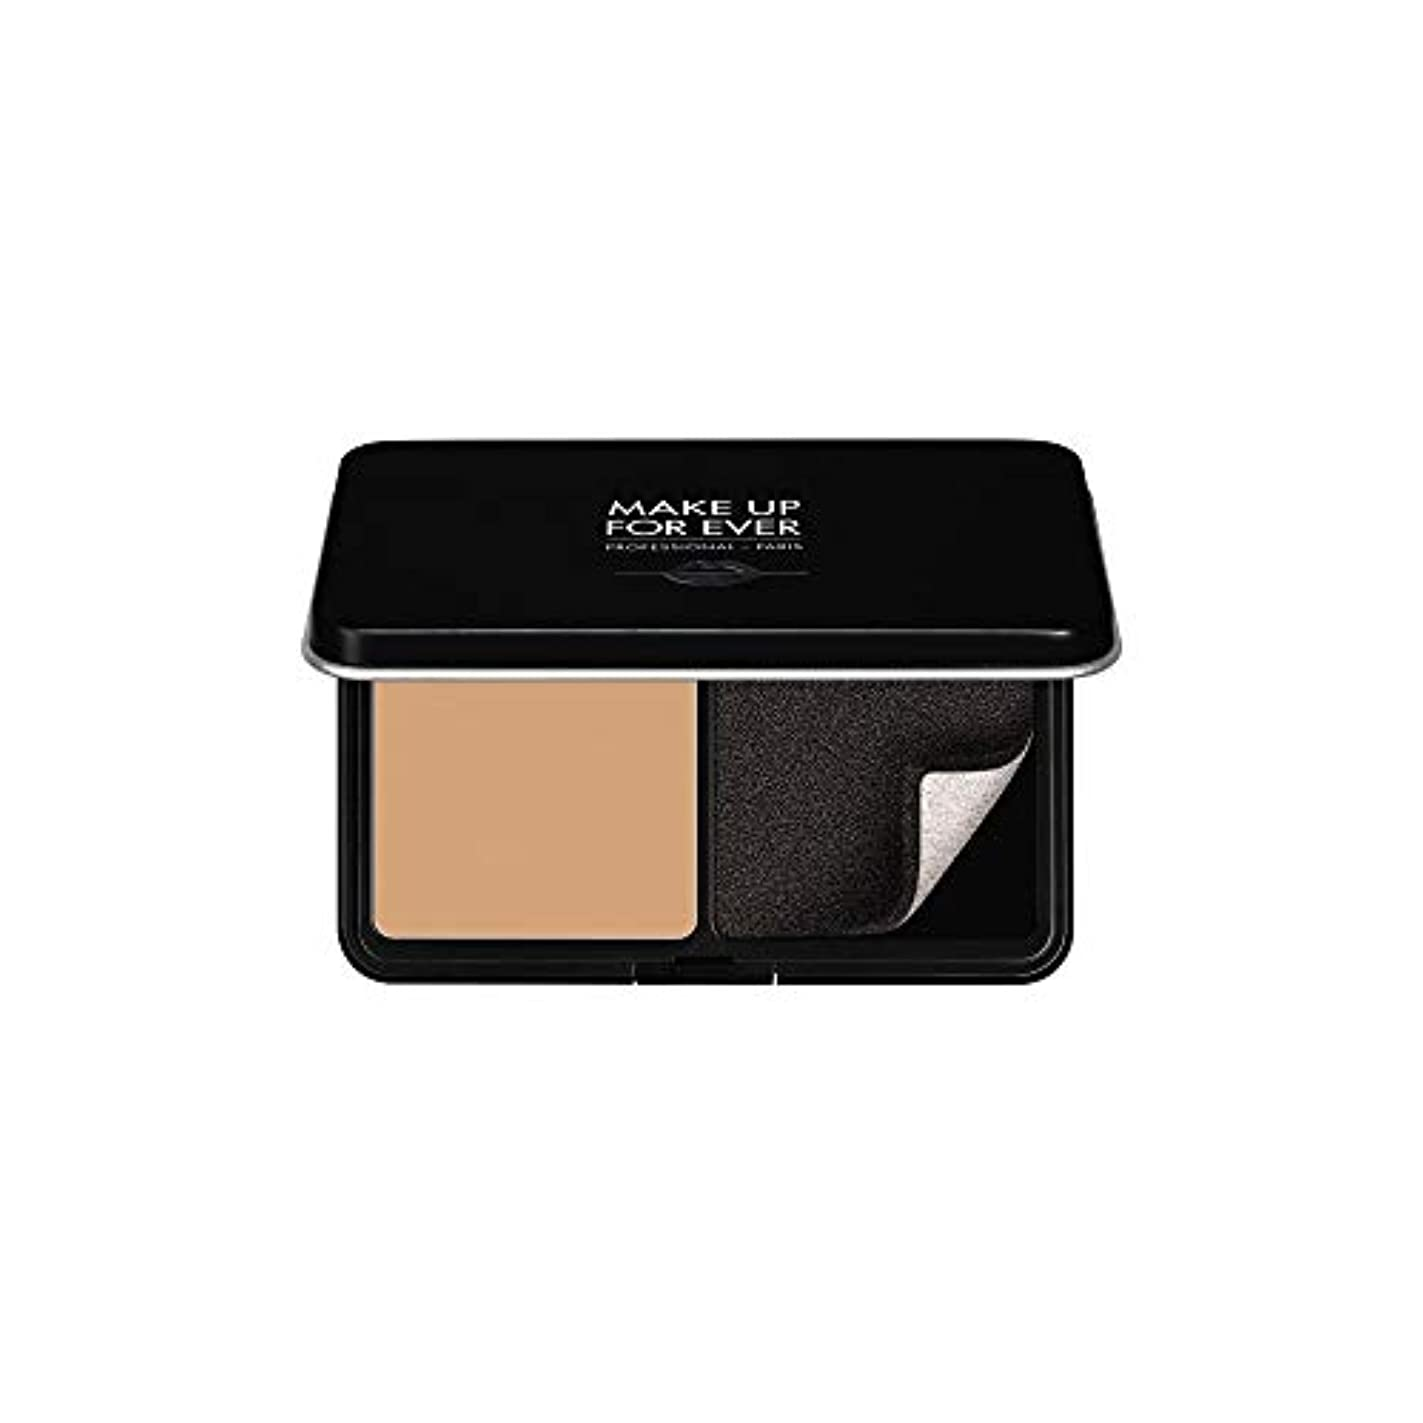 メイクアップフォーエバー Matte Velvet Skin Blurring Powder Foundation - # R330 (Warm Ivory) 11g/0.38oz並行輸入品